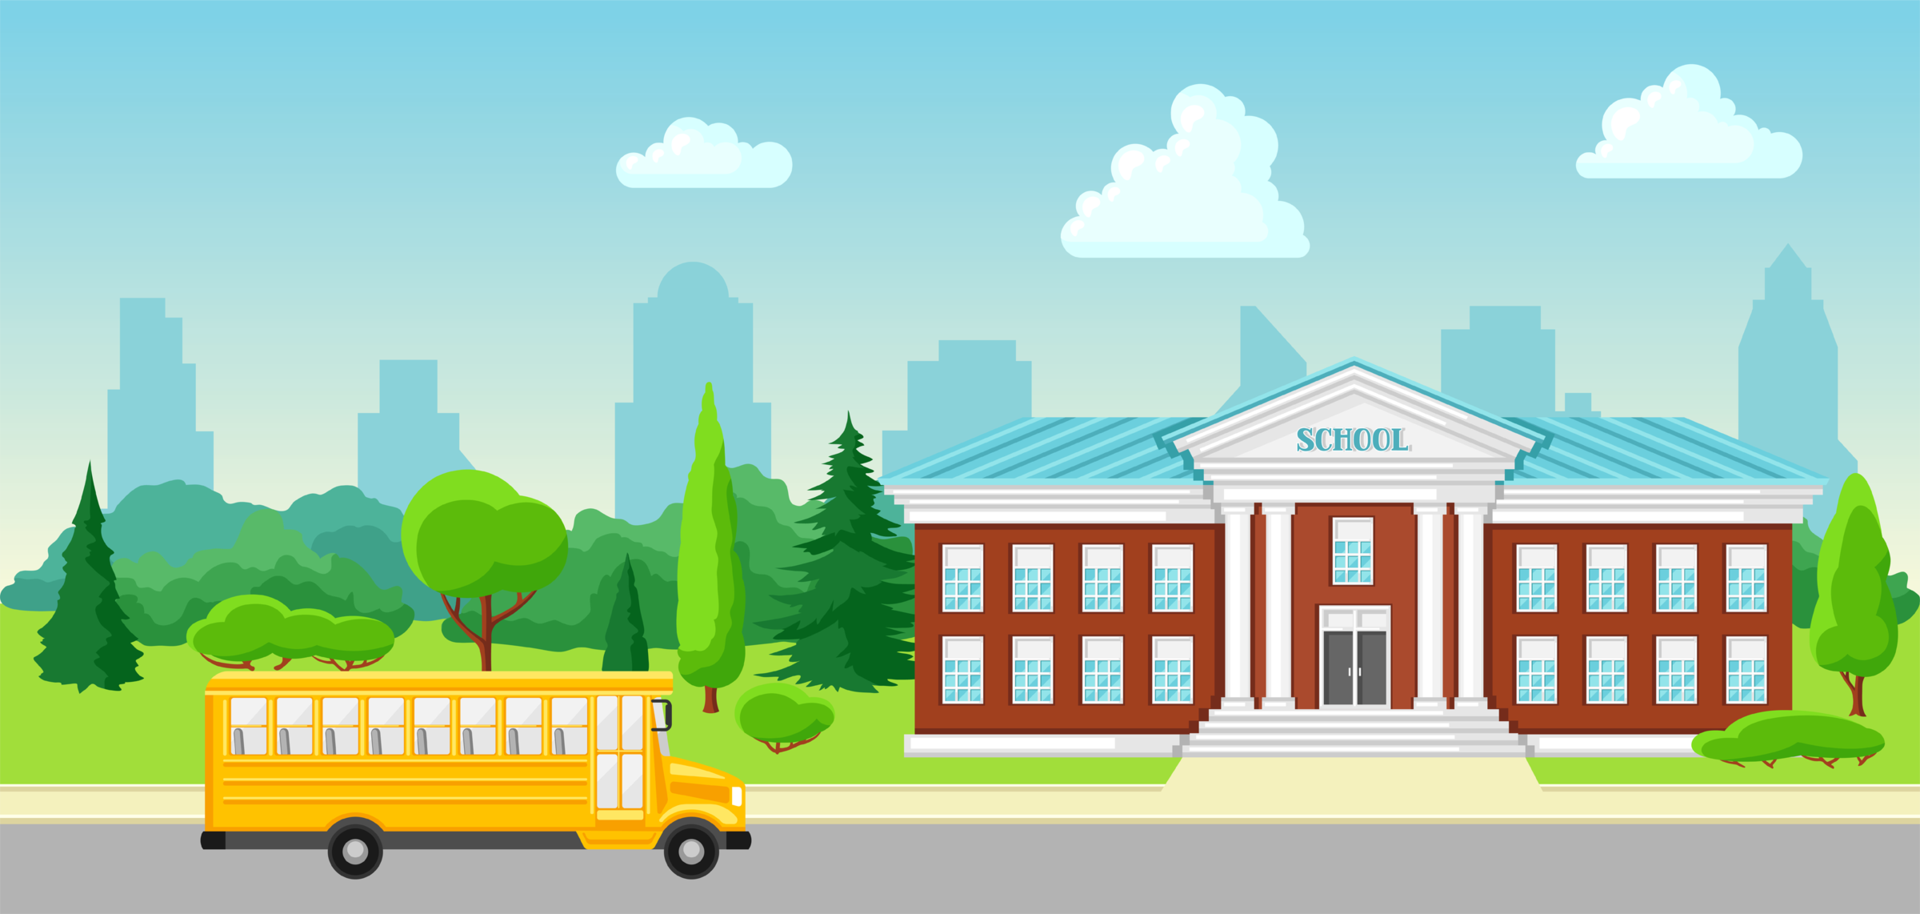 school bus and school building